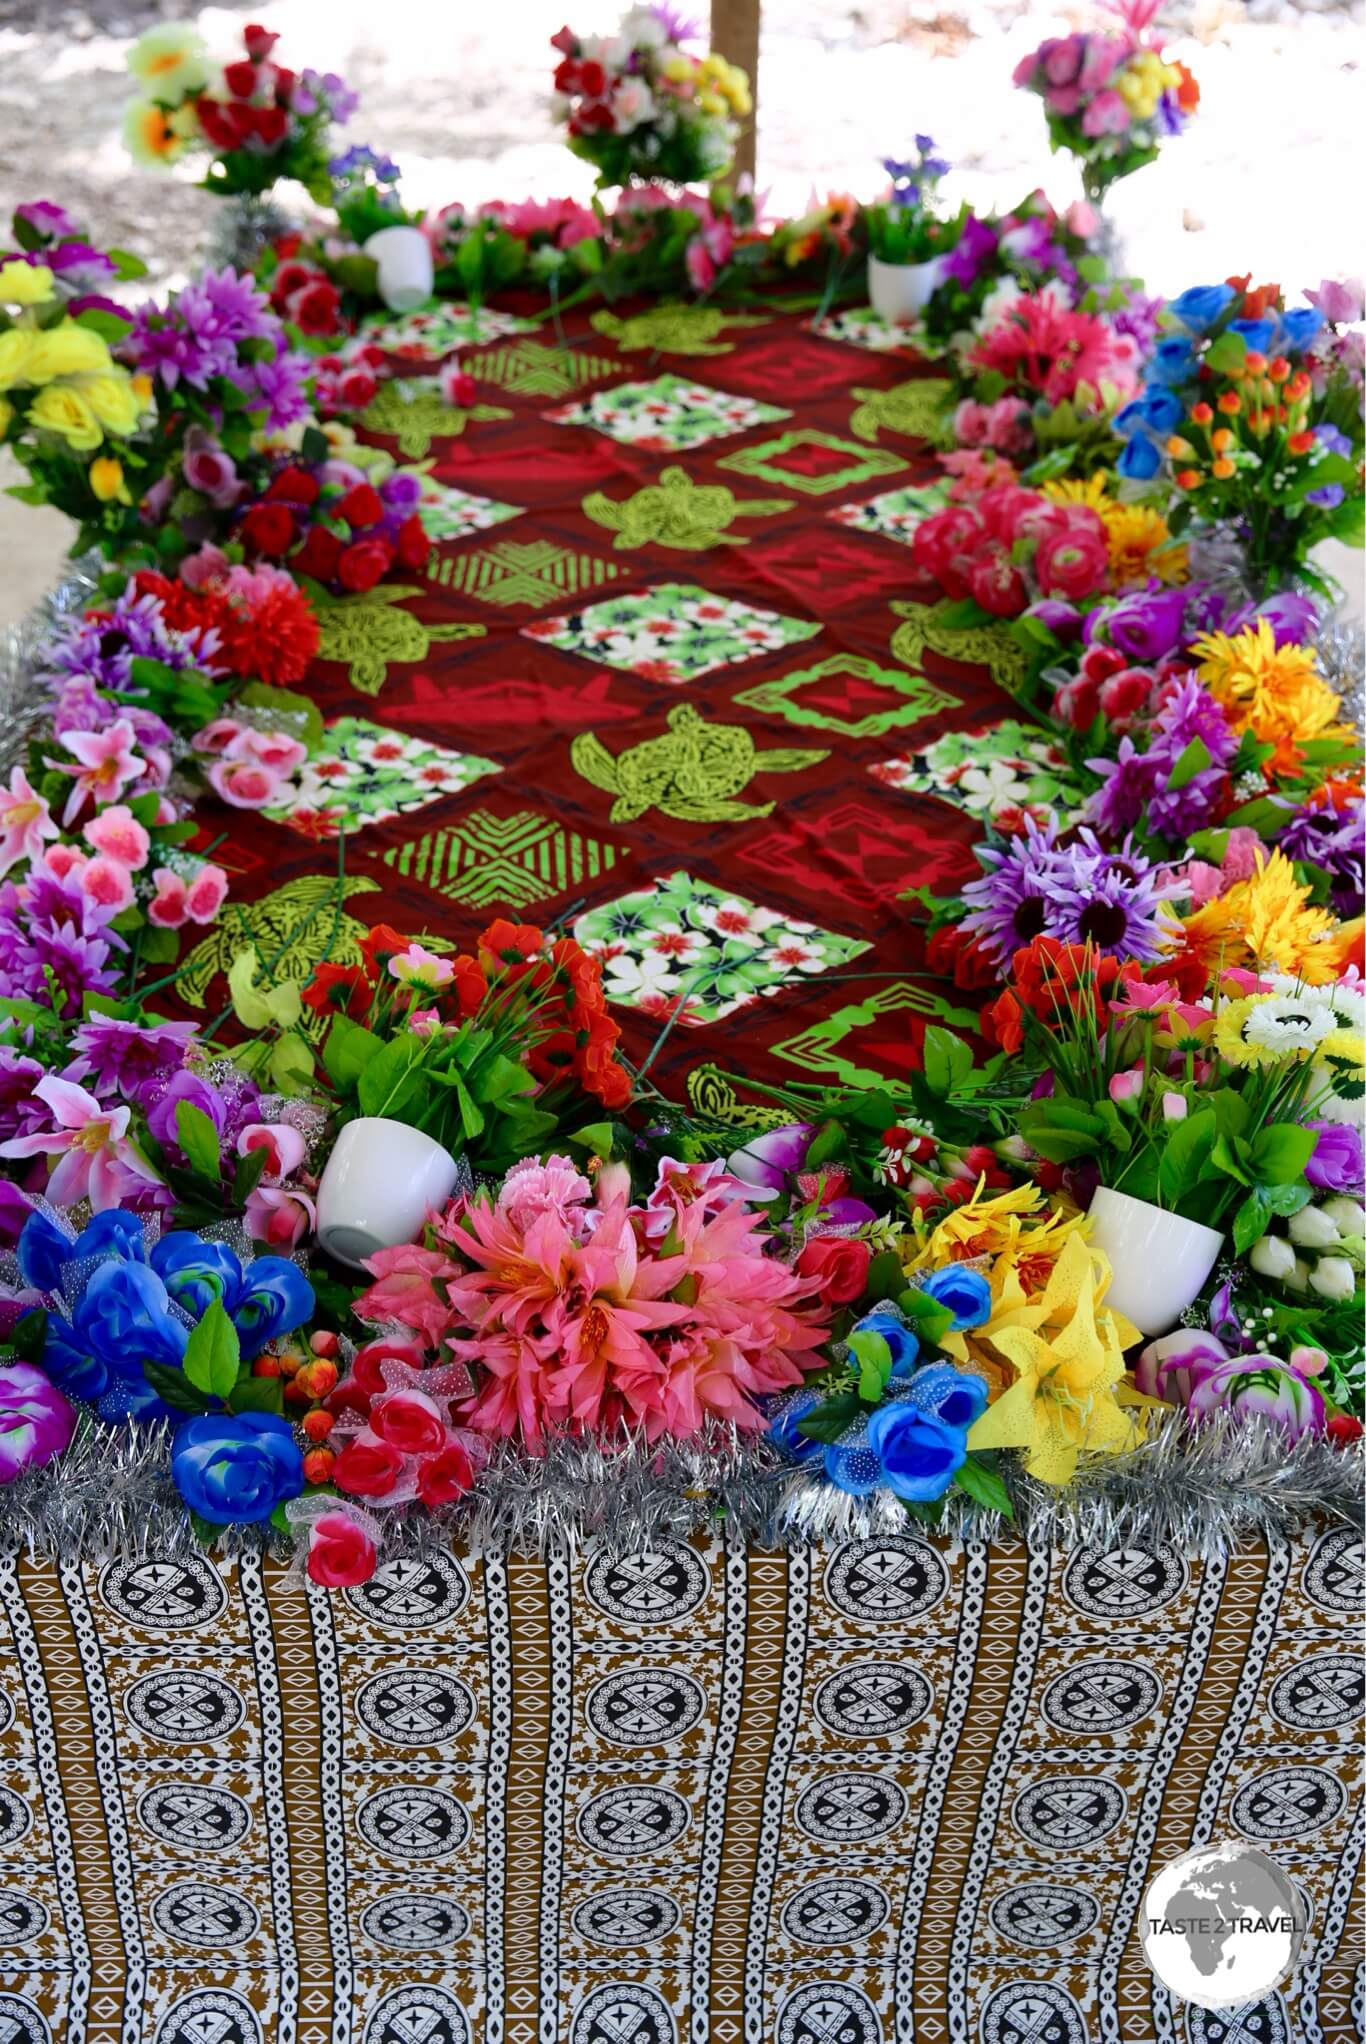 A colourfully decorated grave.